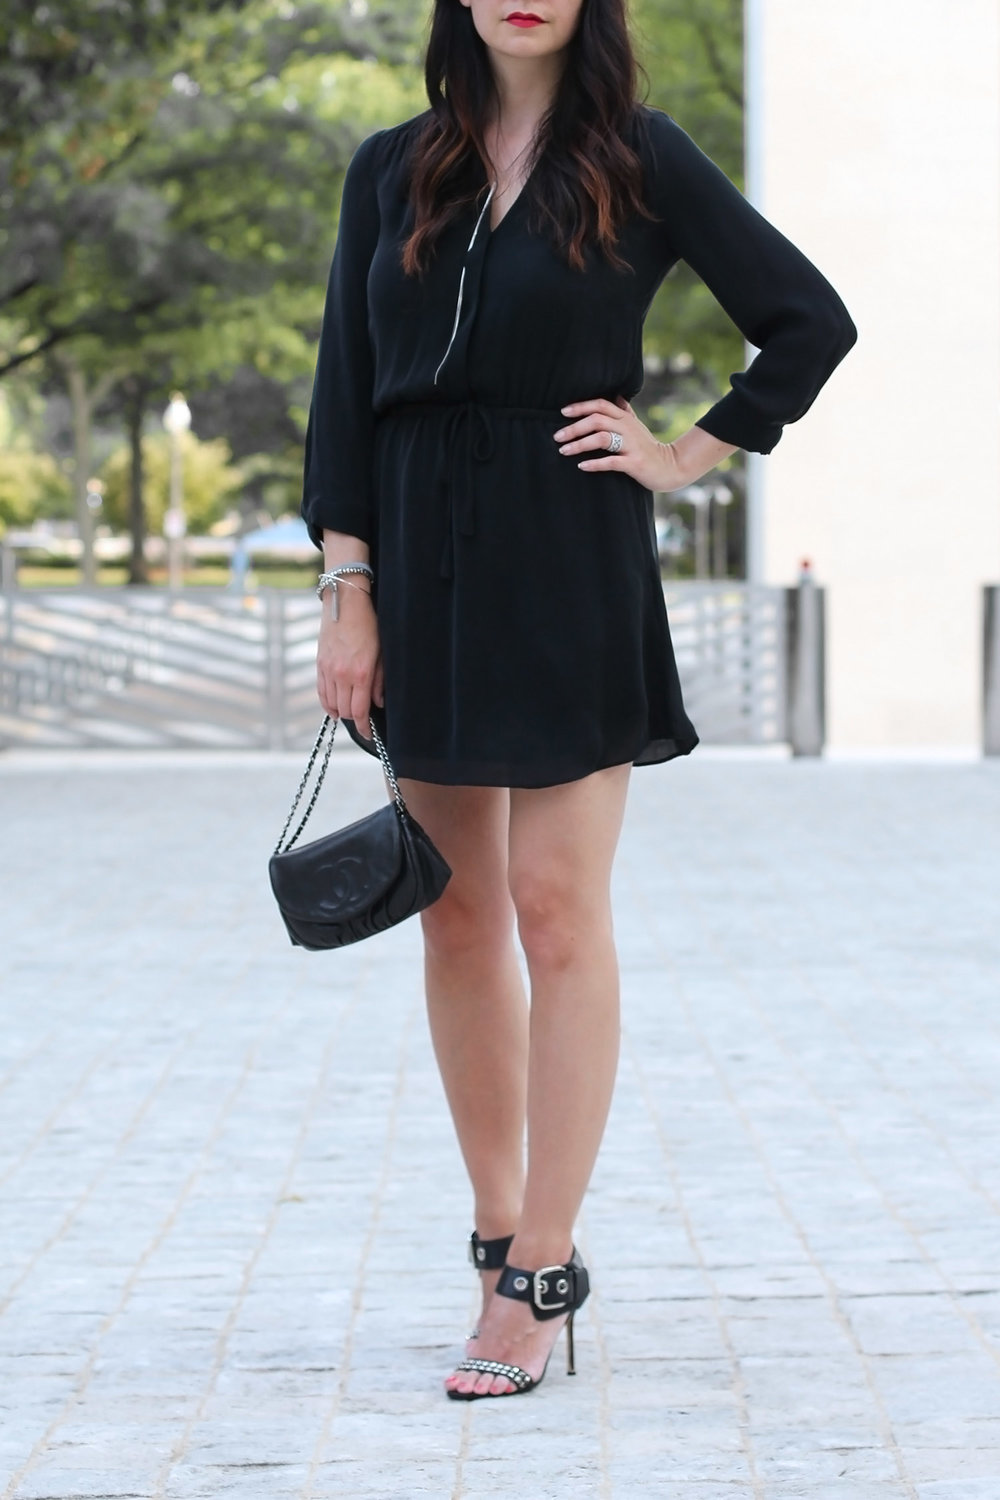 The Little Black Dress for Summer